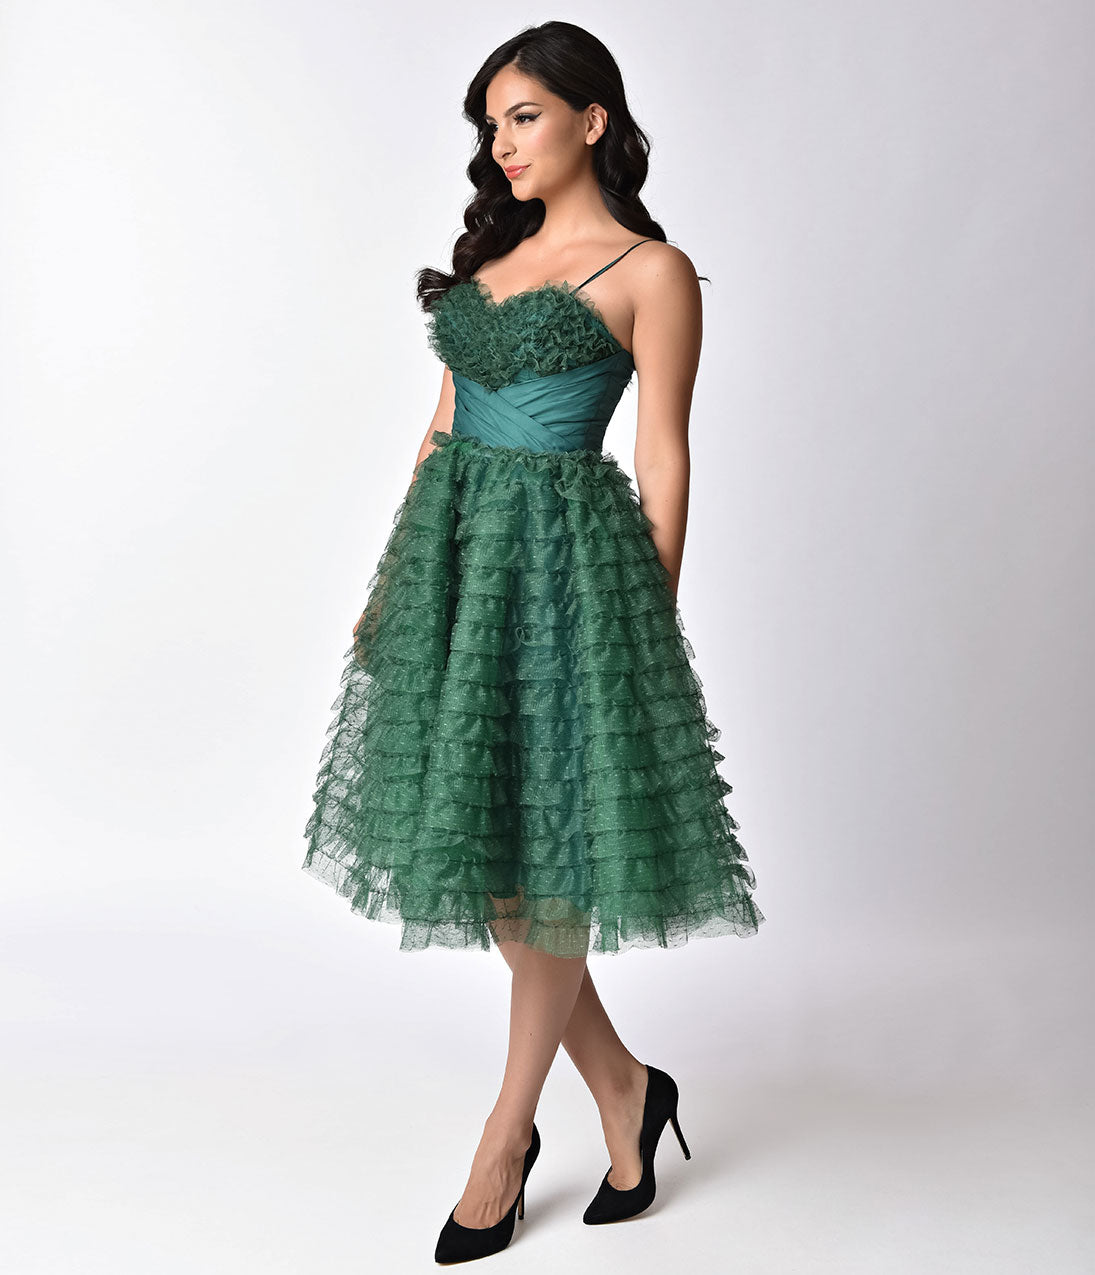 Vintage Evening Dresses Unique Vintage 1950S Emerald Green Ruffled Tulle Sweetheart Cupcake Swing Dress $128.00 AT vintagedancer.com